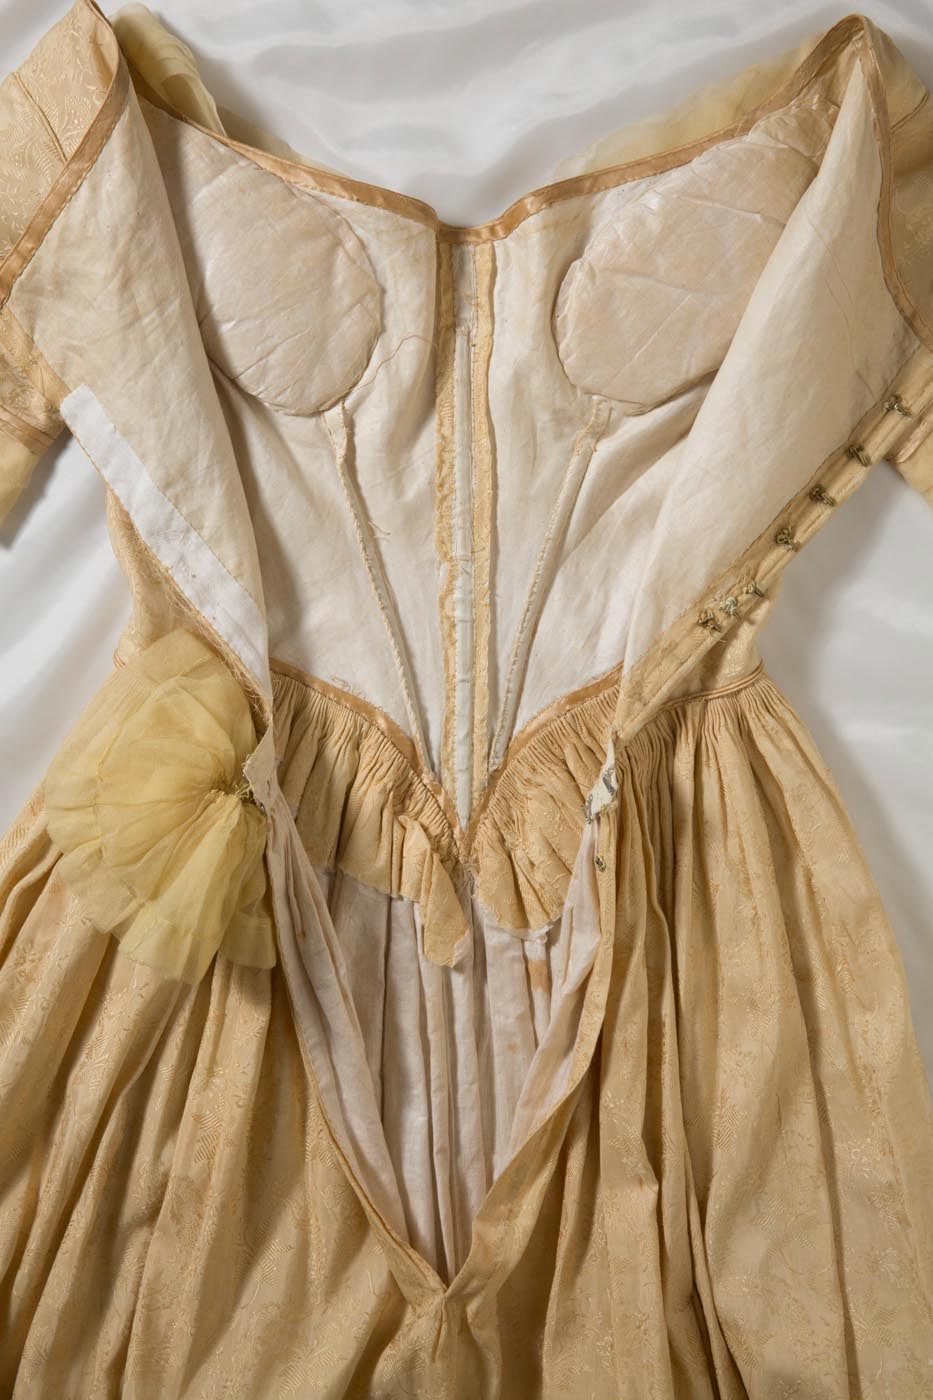 The interior of the bodice showing the lining and boning. - click to view larger image